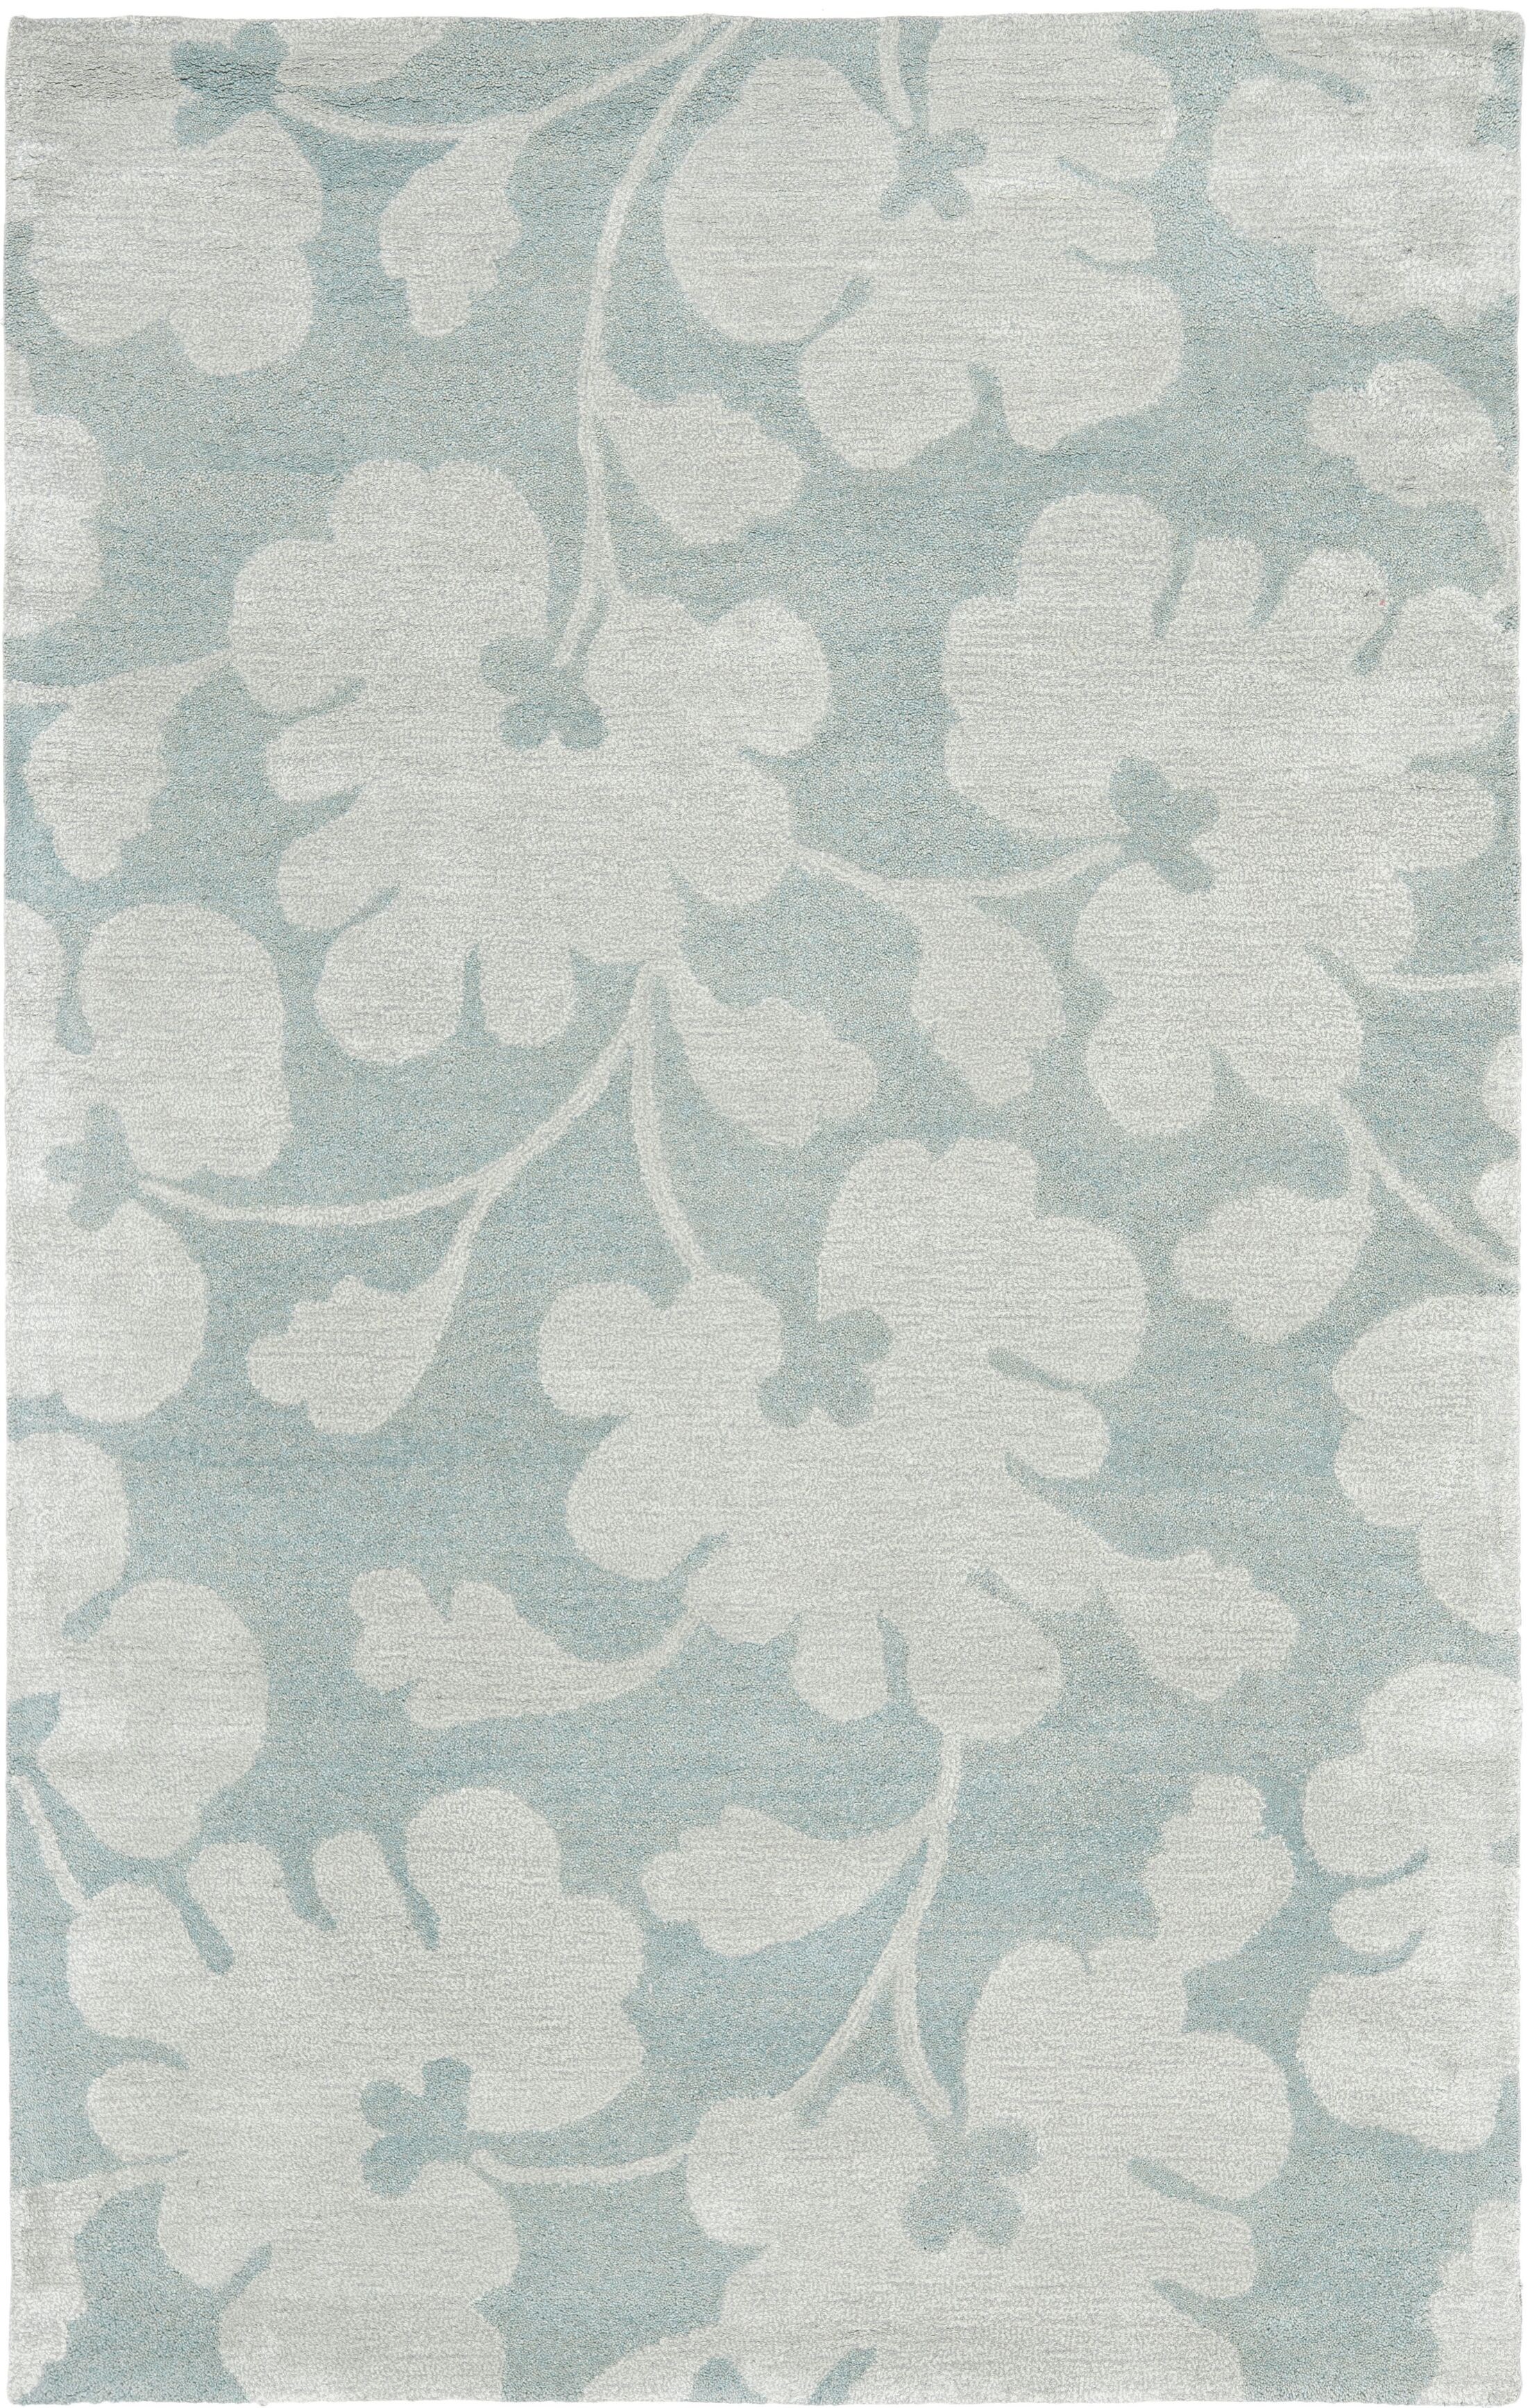 Armstrong Hand-Tufted Light Blue / Silver Area Rug Rug Size: Rectangle 8'3